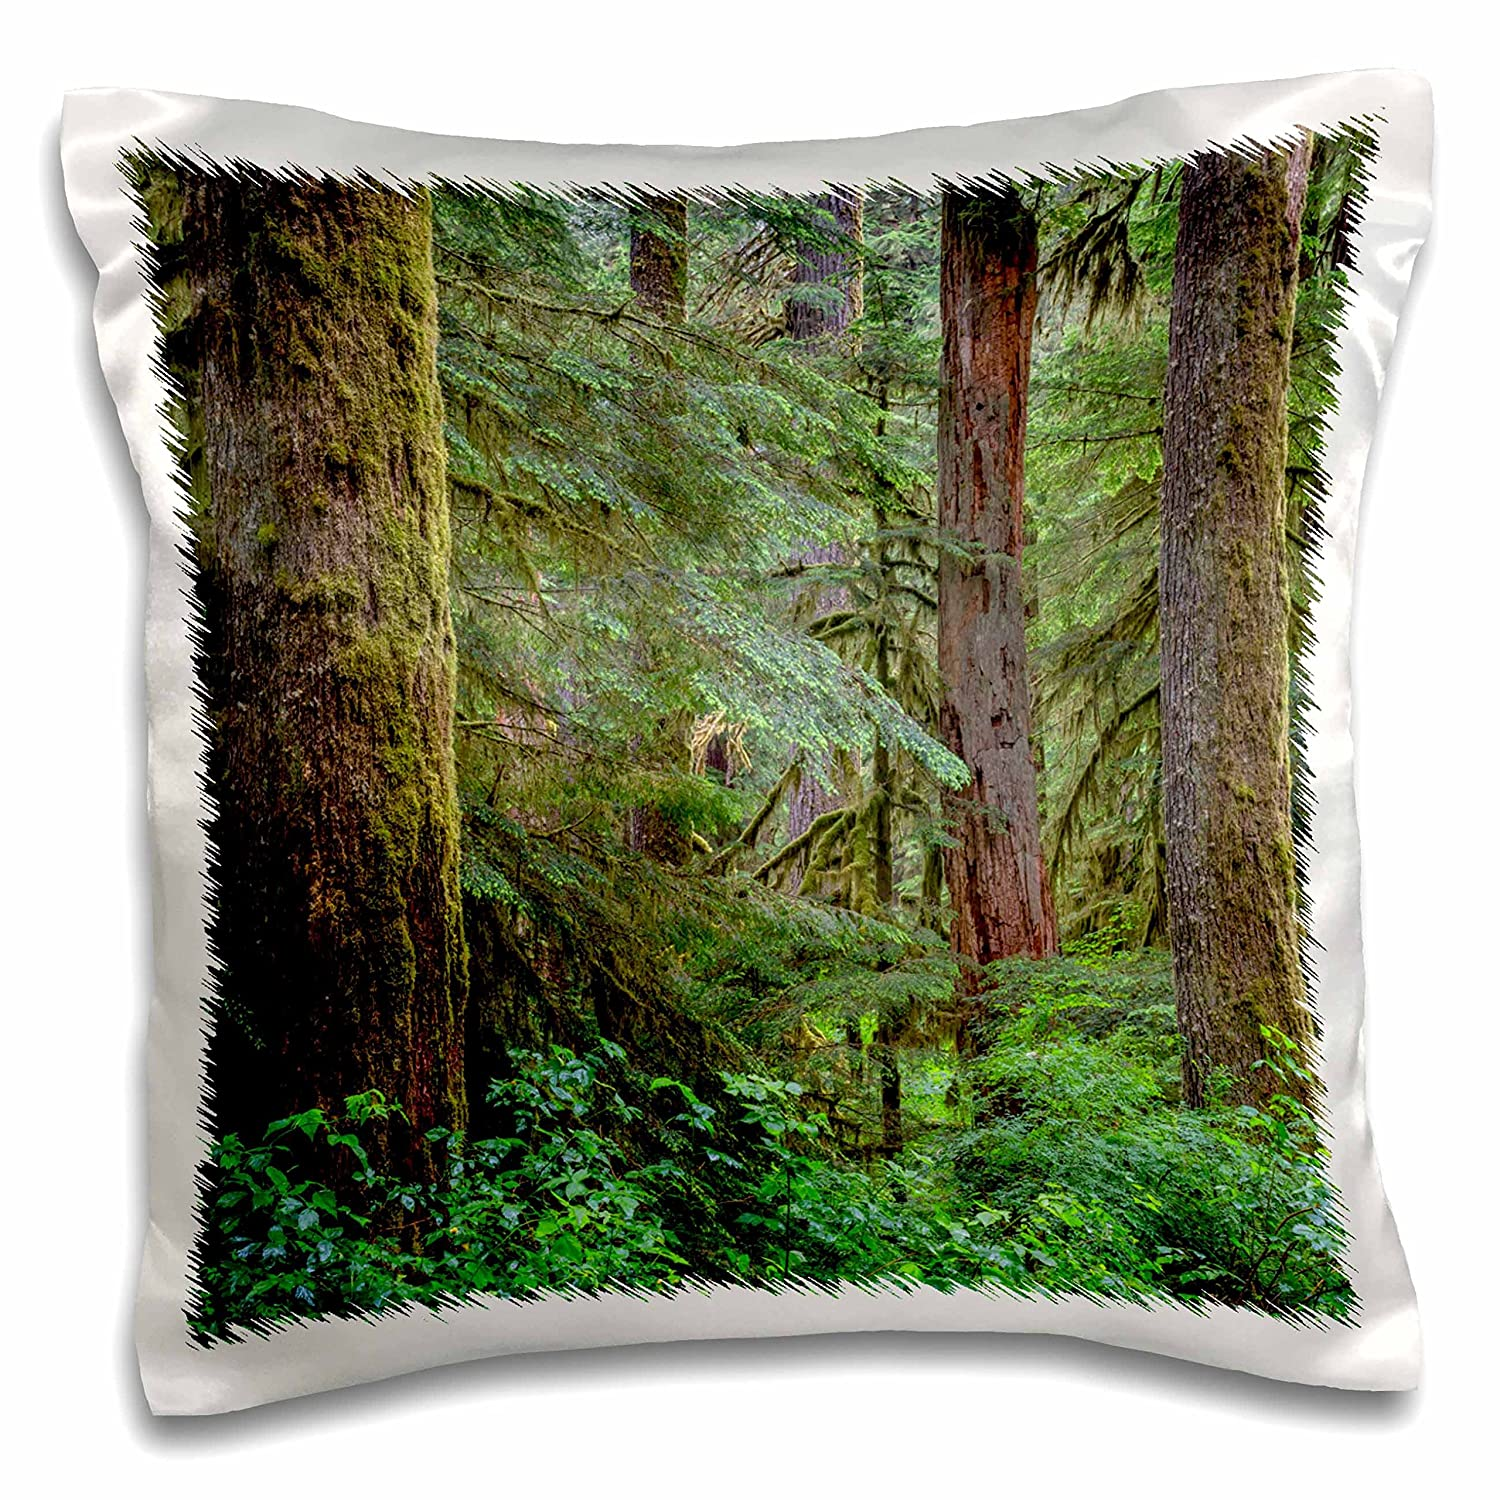 - 16x16 inch Pillow Case Old Growth Forest with Large Douglas fir pc/_279352/_1 Oregon Forests Willamette NF 3dRose Danita Delimont